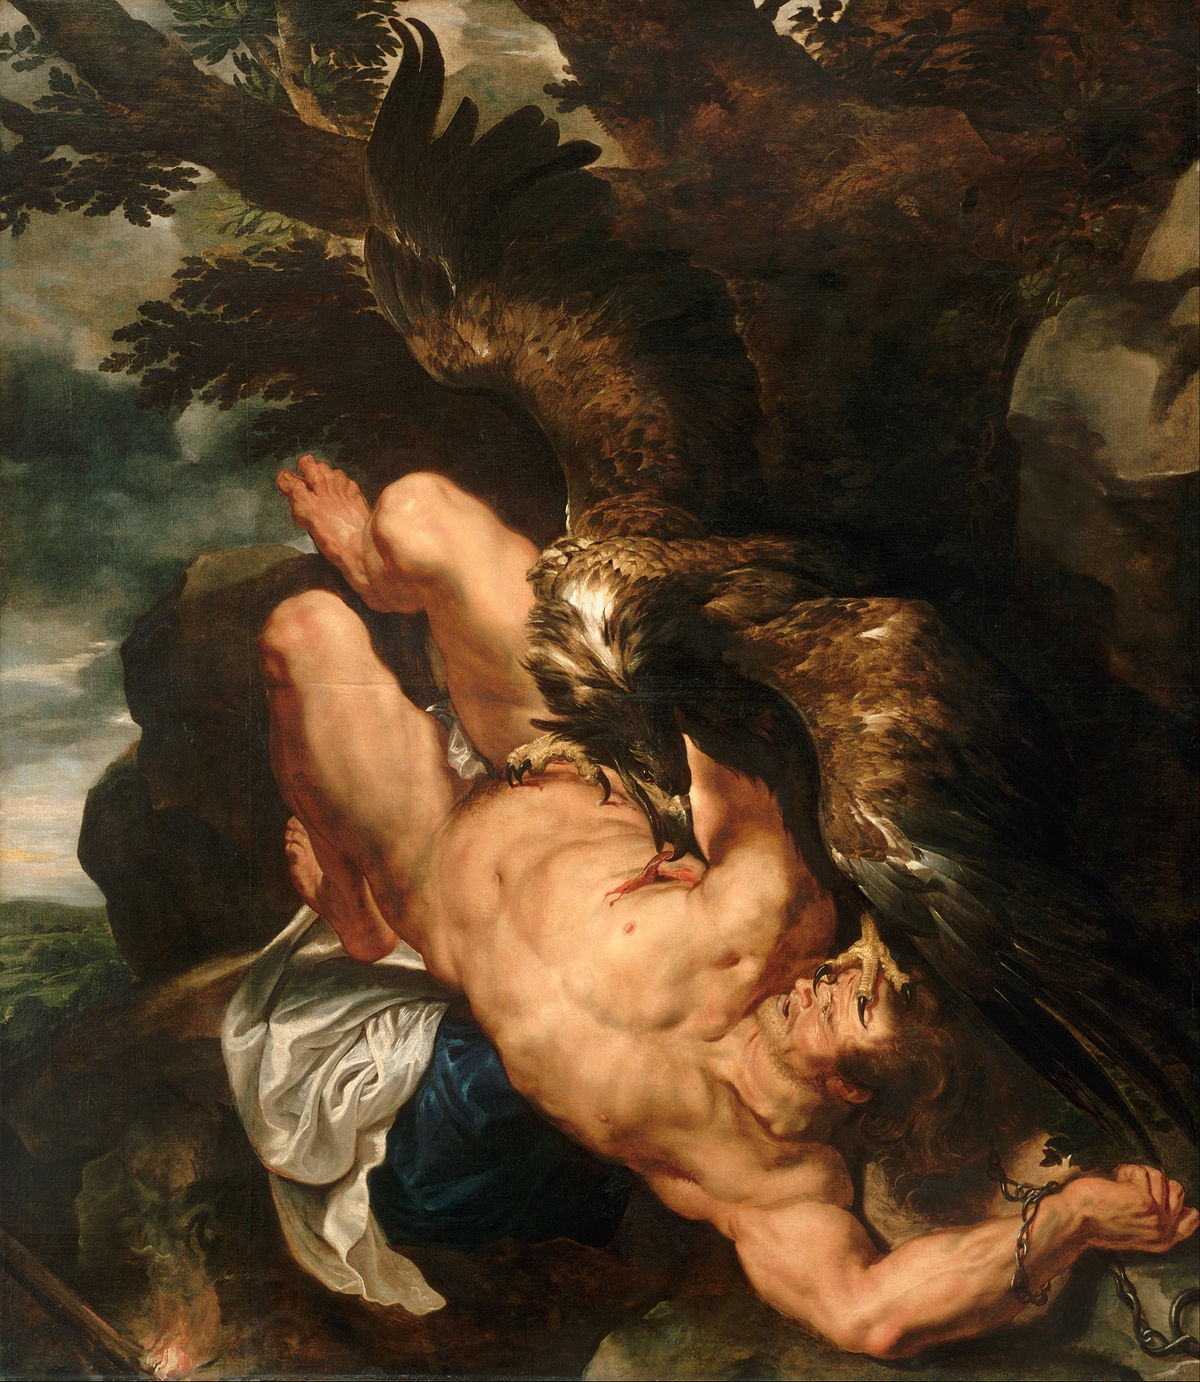 1200px-Peter_Paul_Rubens,_Flemish_(active_Italy,_Antwerp,_and_England)_-_Prometheus_Bound_-_Google_Art_Project.jpg